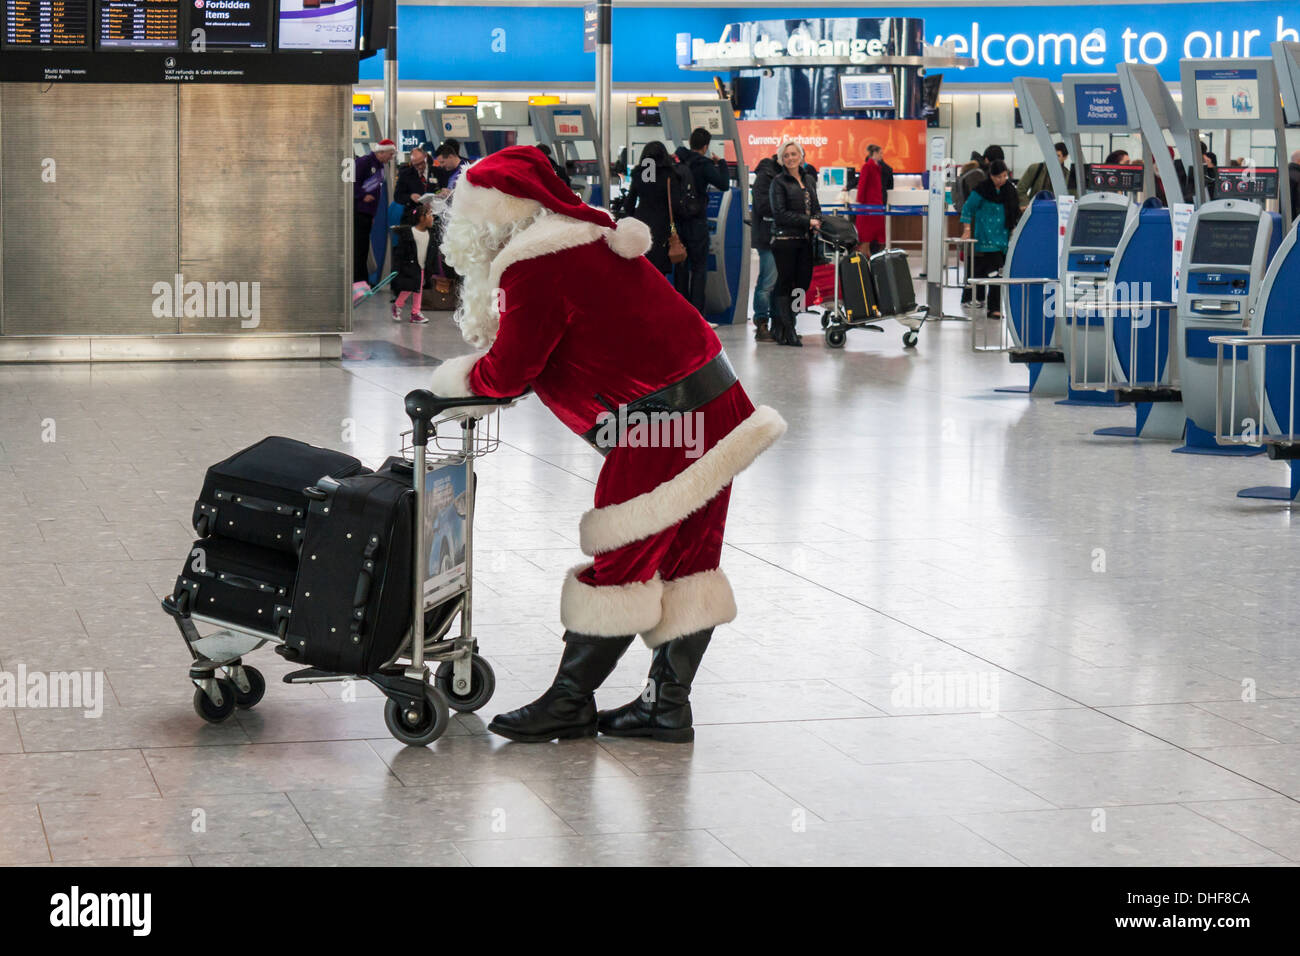 Father Christmas waits at T5 Heathrow Airport, London.  Christmas travel delays concept. Stock Photo